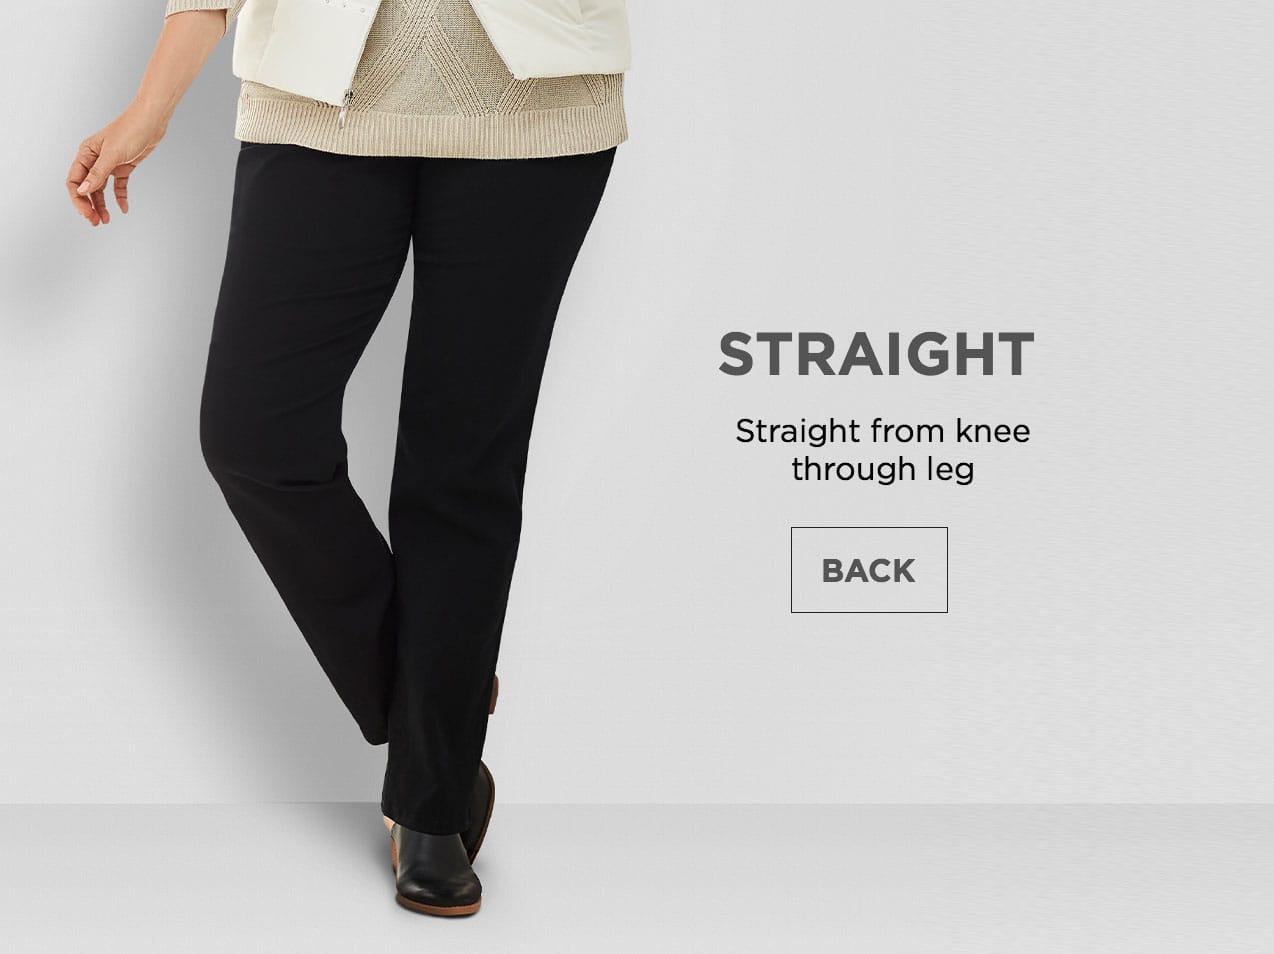 Straight: Straight from knee through leg.